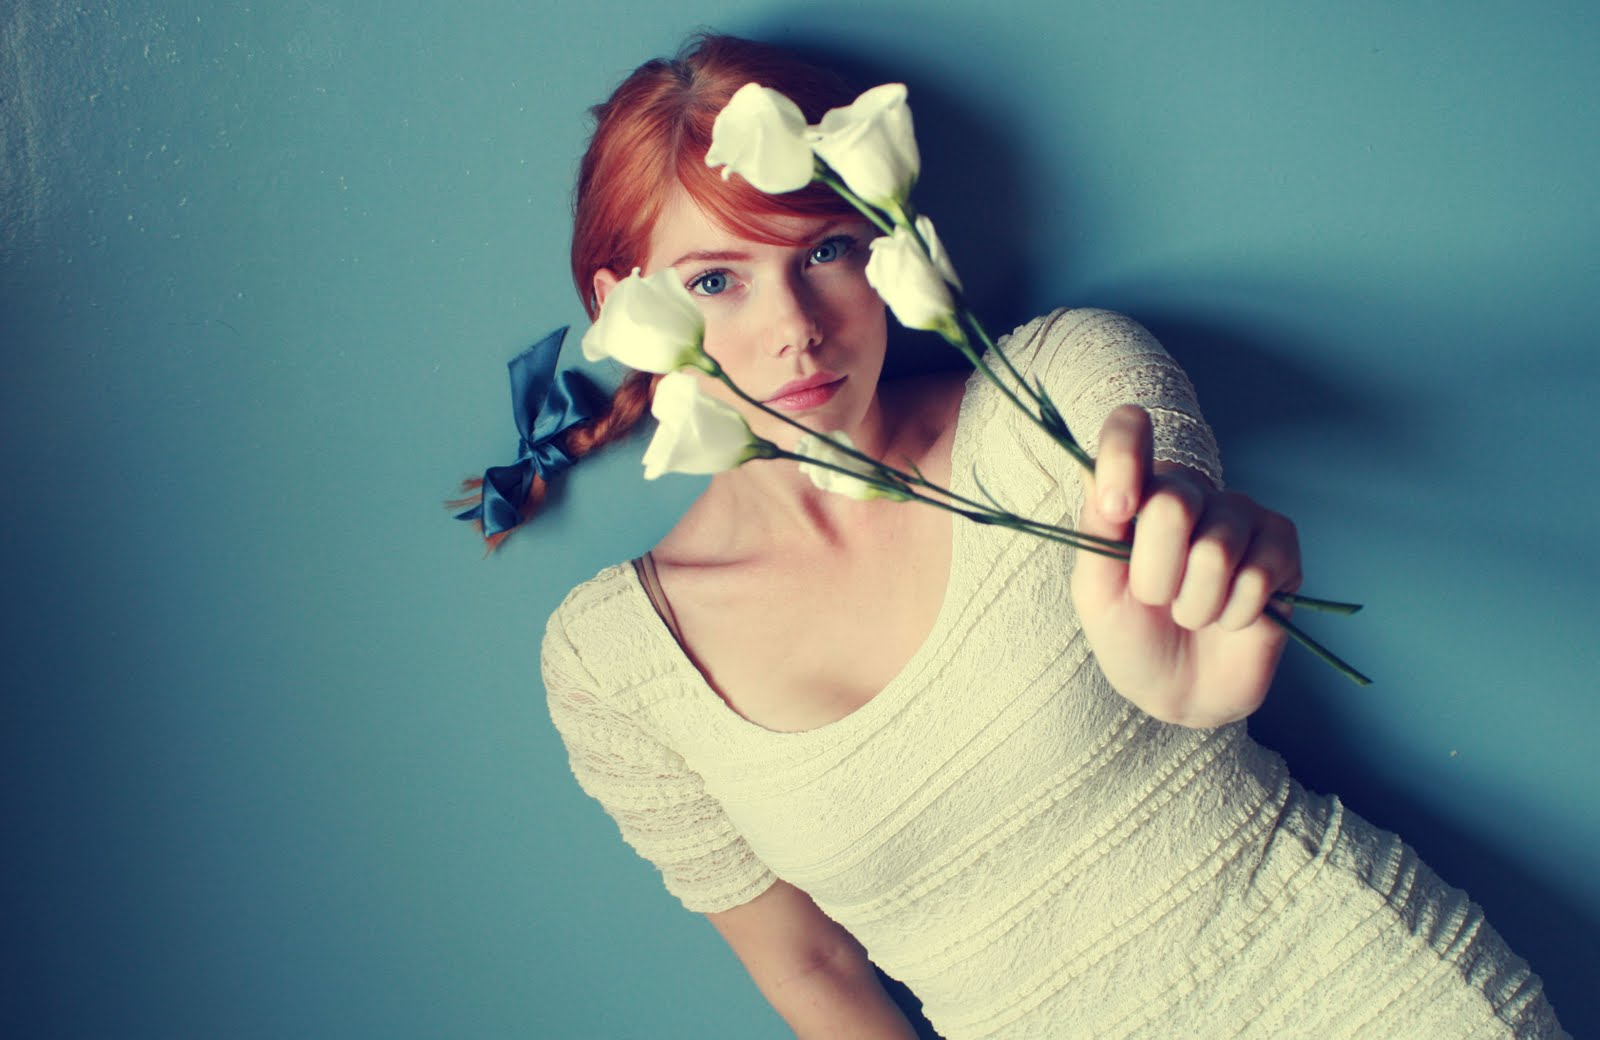 woman Flowers redheads lying HD Wallpaper